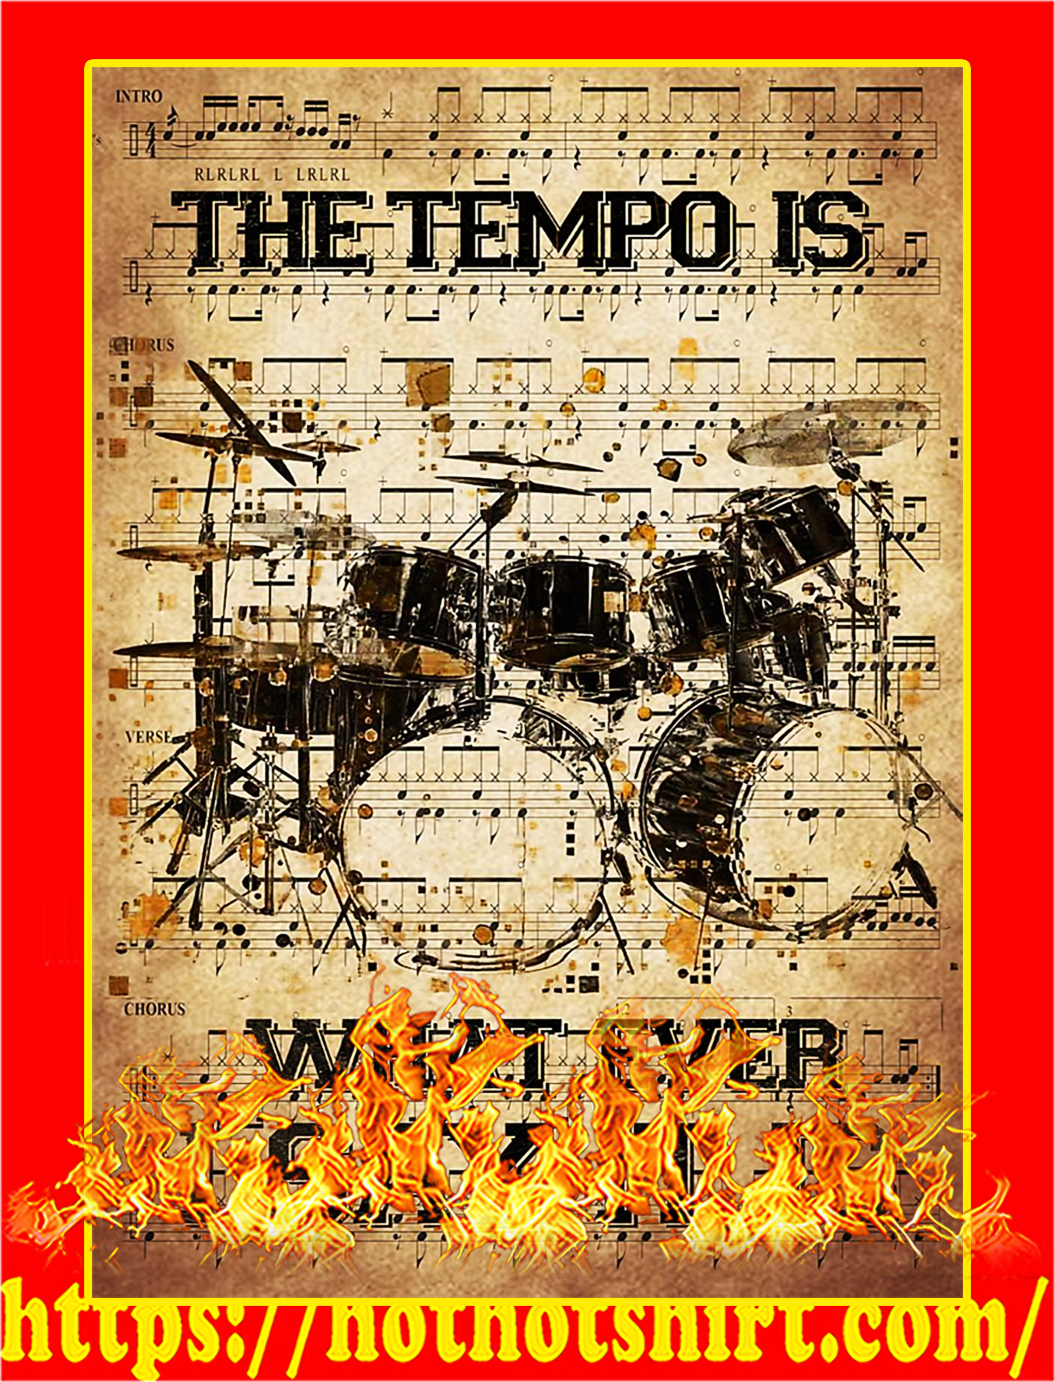 The tempo is what ever i say it is poster - A4